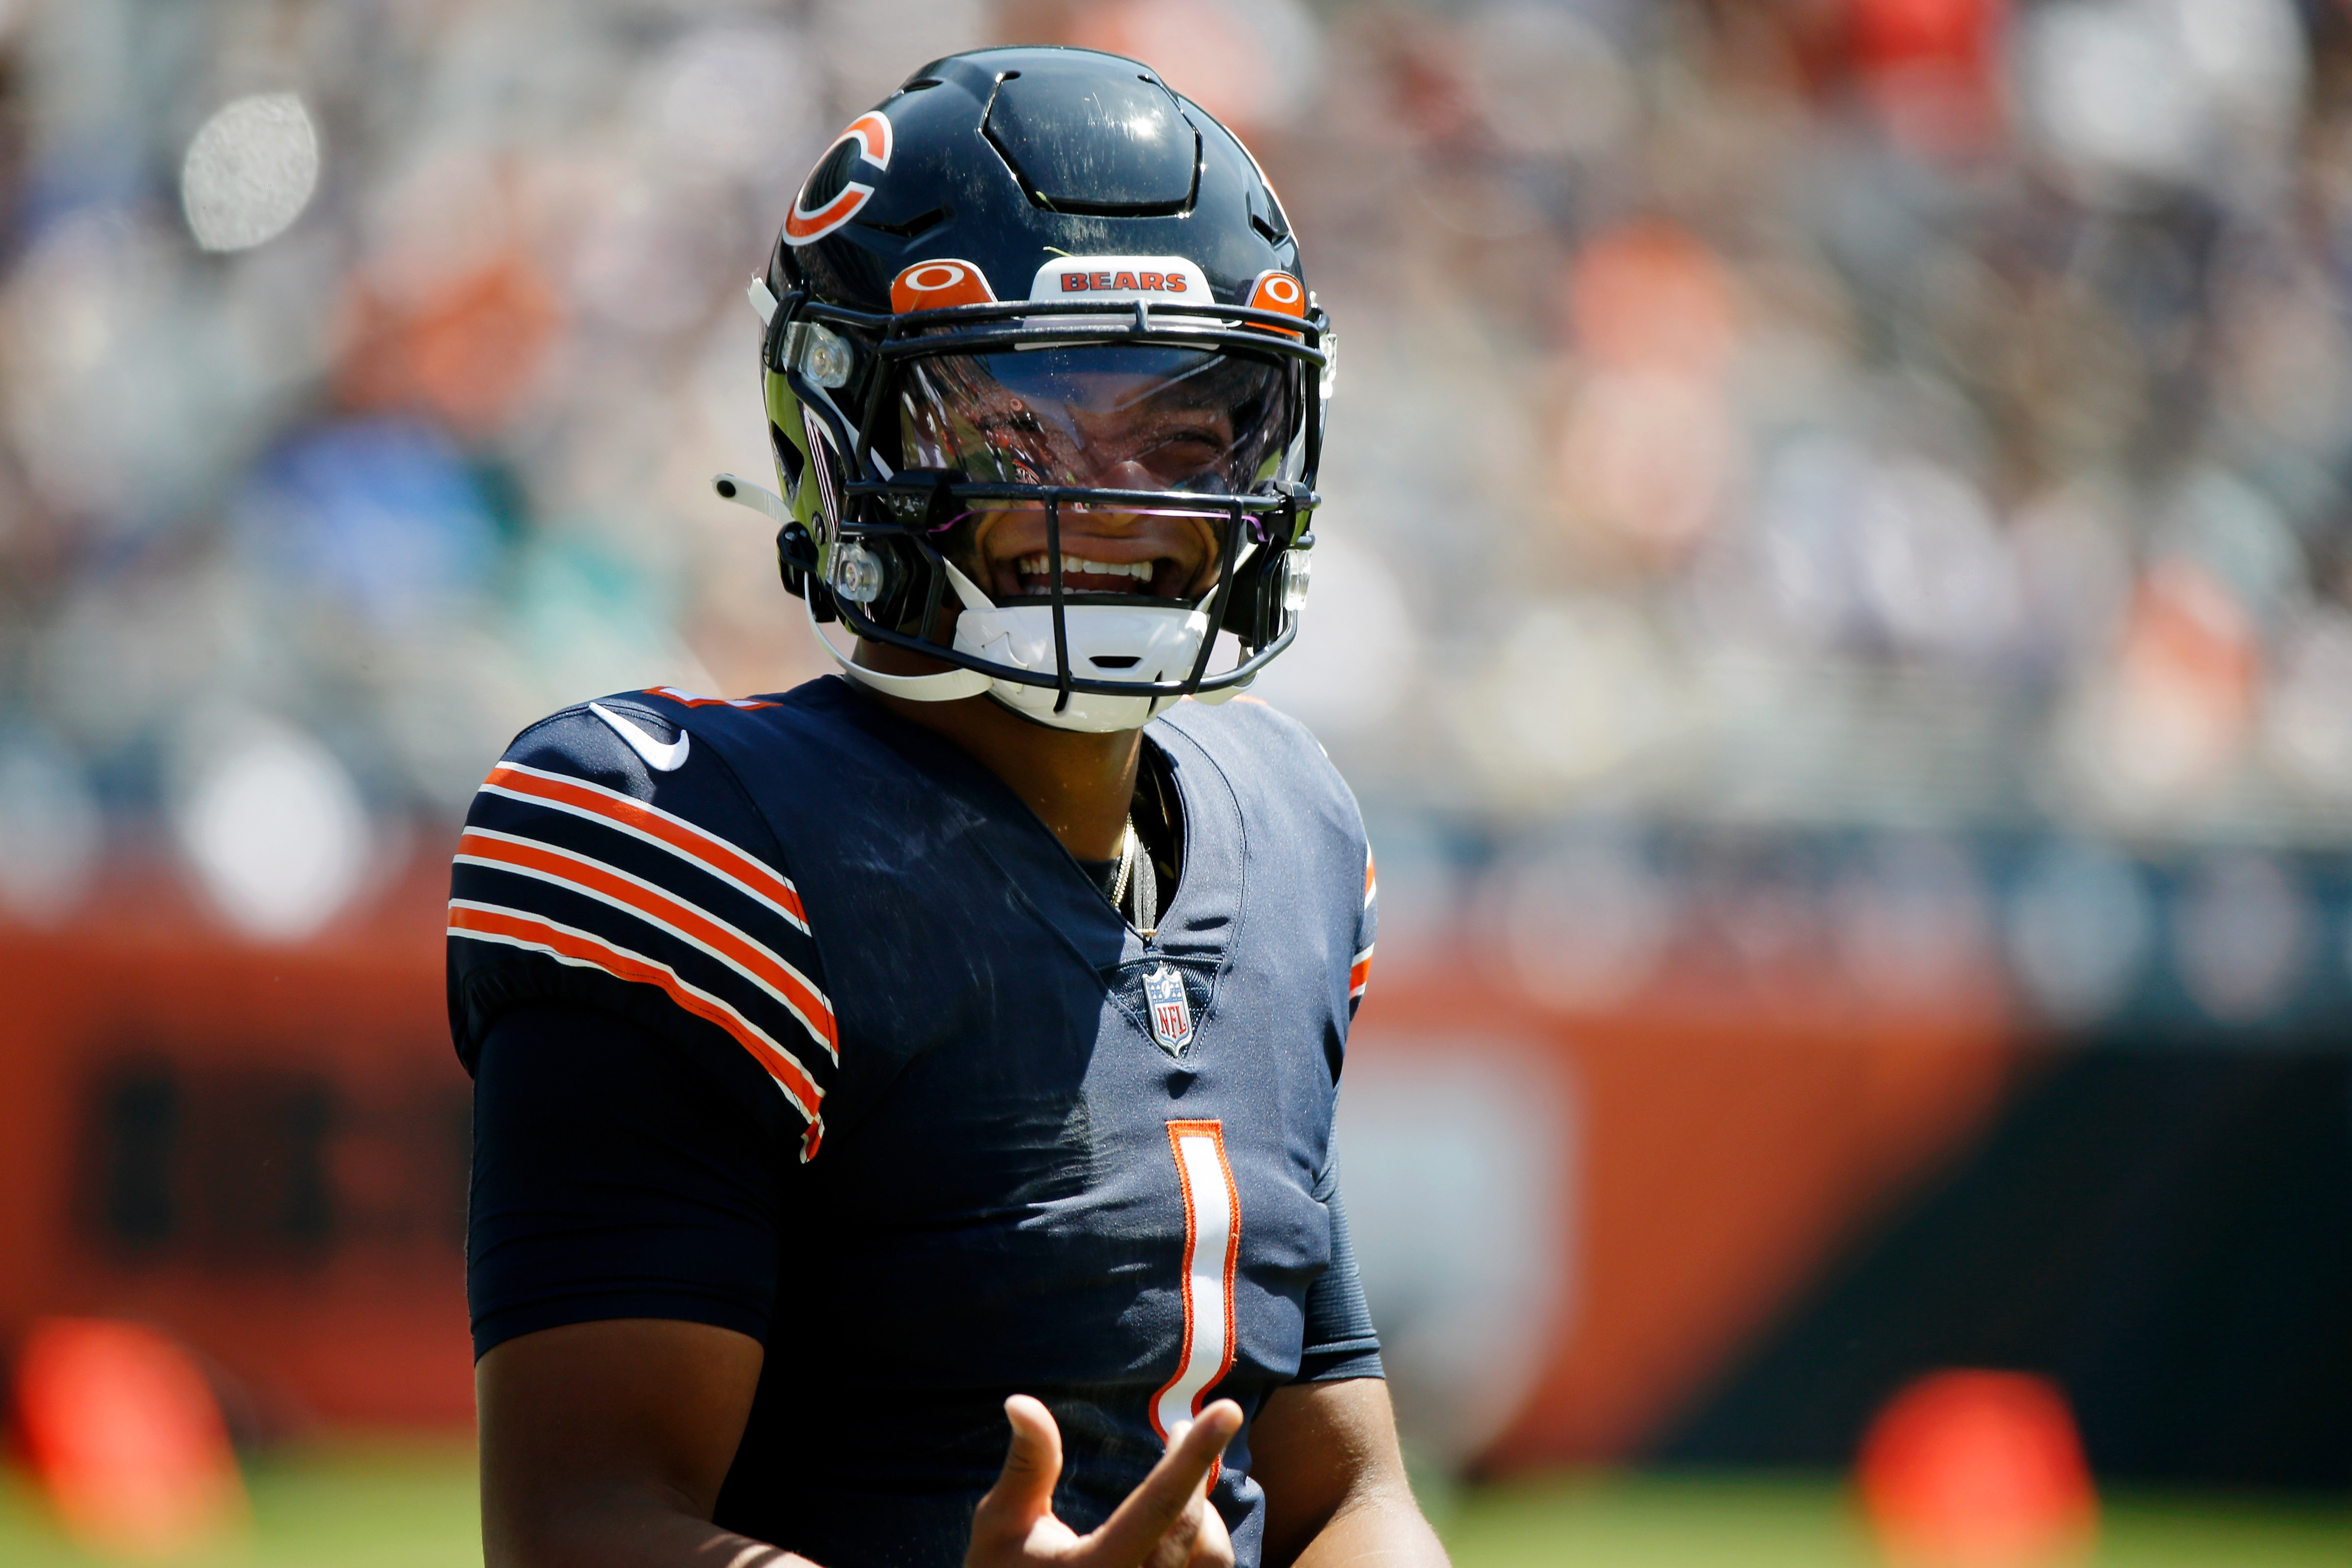 NFL: Miami Dolphins at Chicago Bears